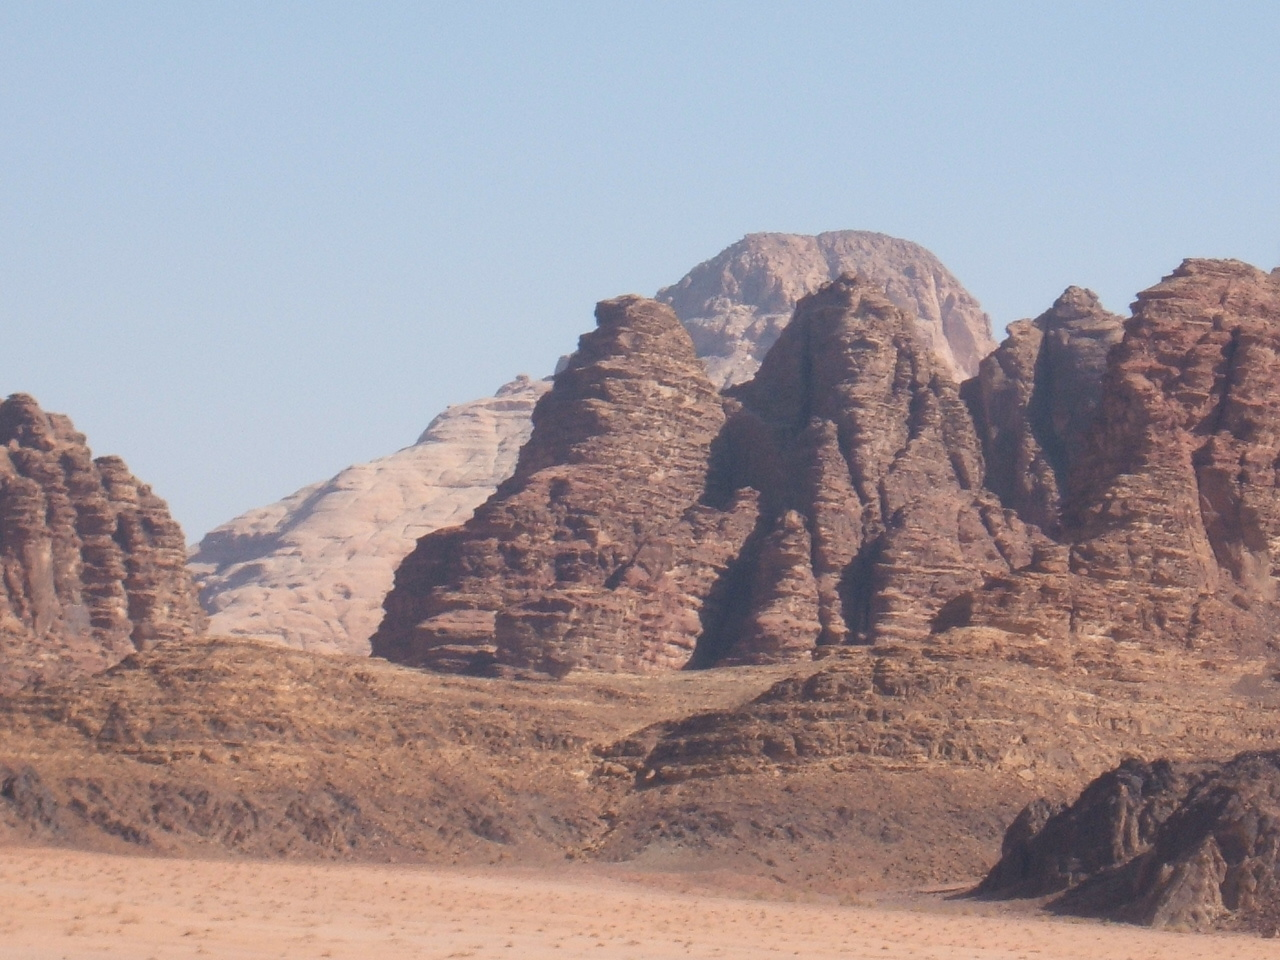 Wadi Rum Approach - what looks like the Sphynx at the entrance